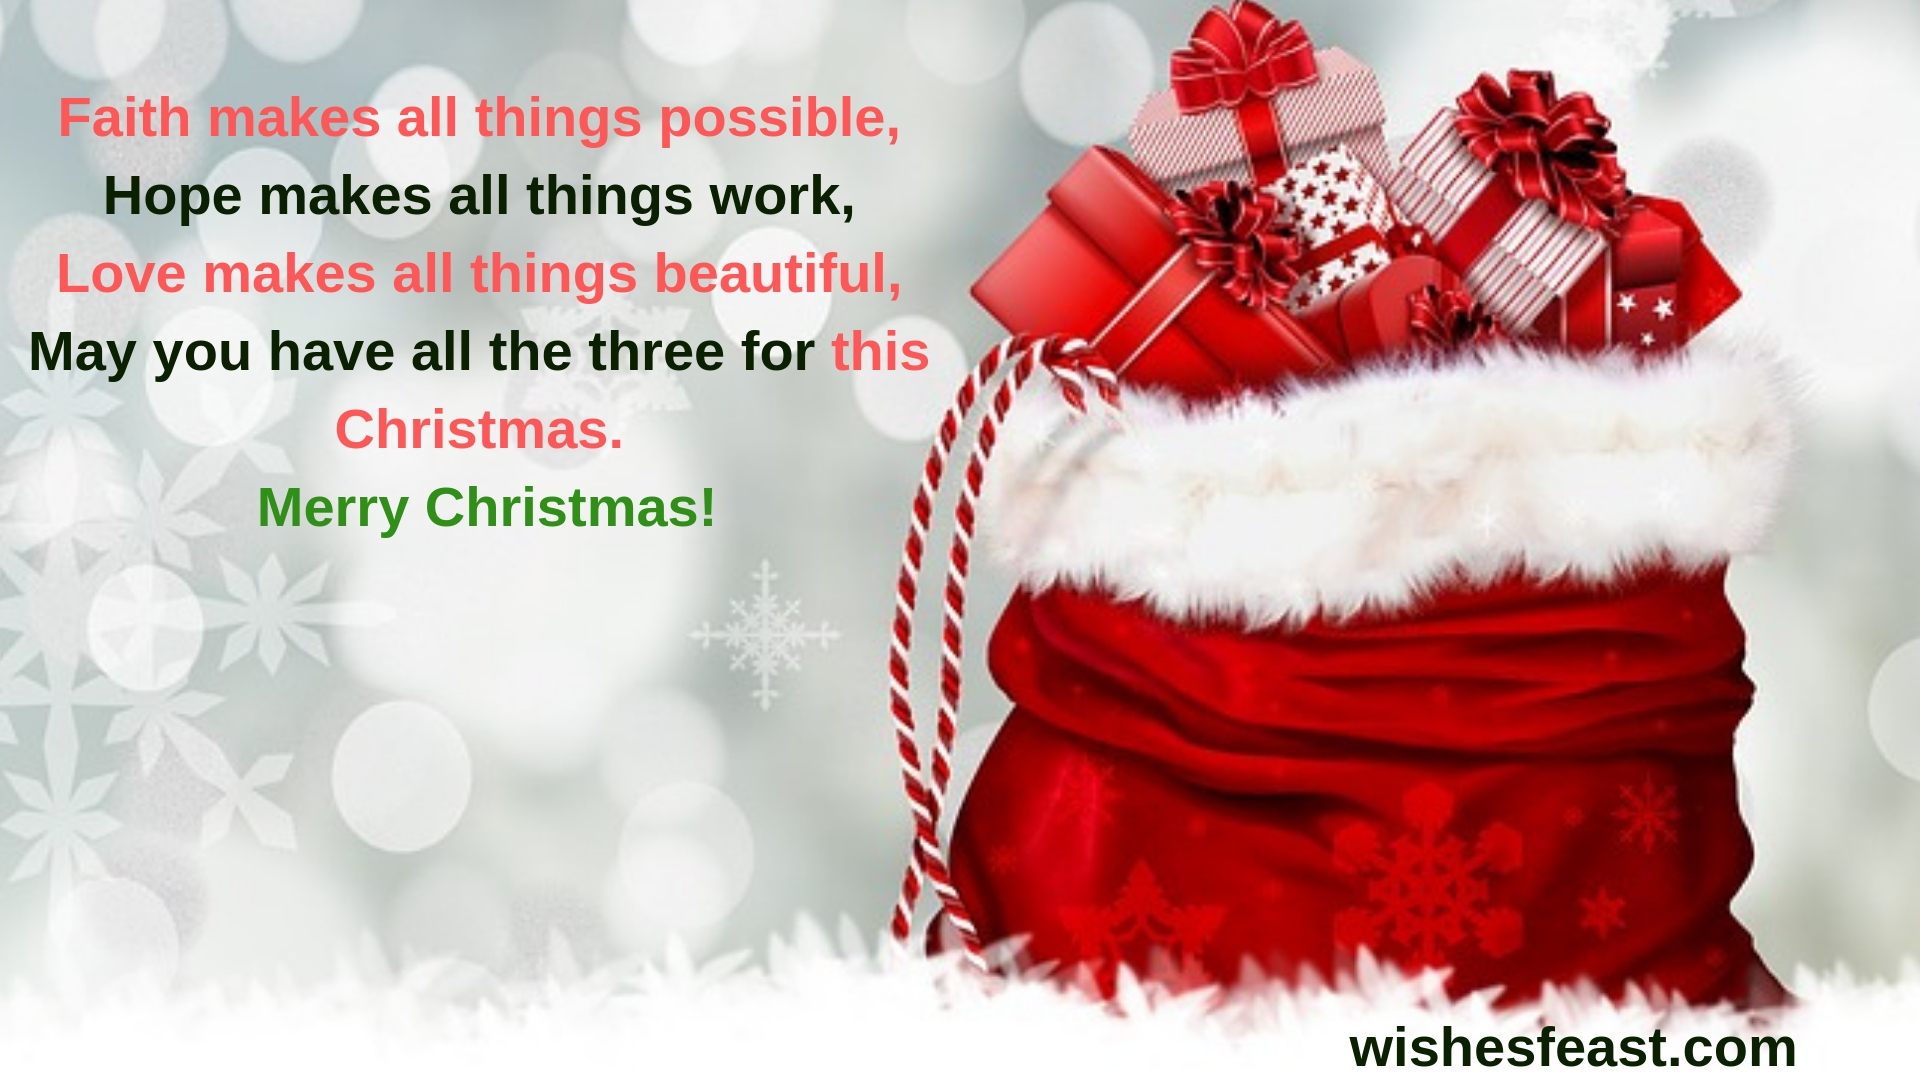 Merry Christmas Wishes Messages 2019